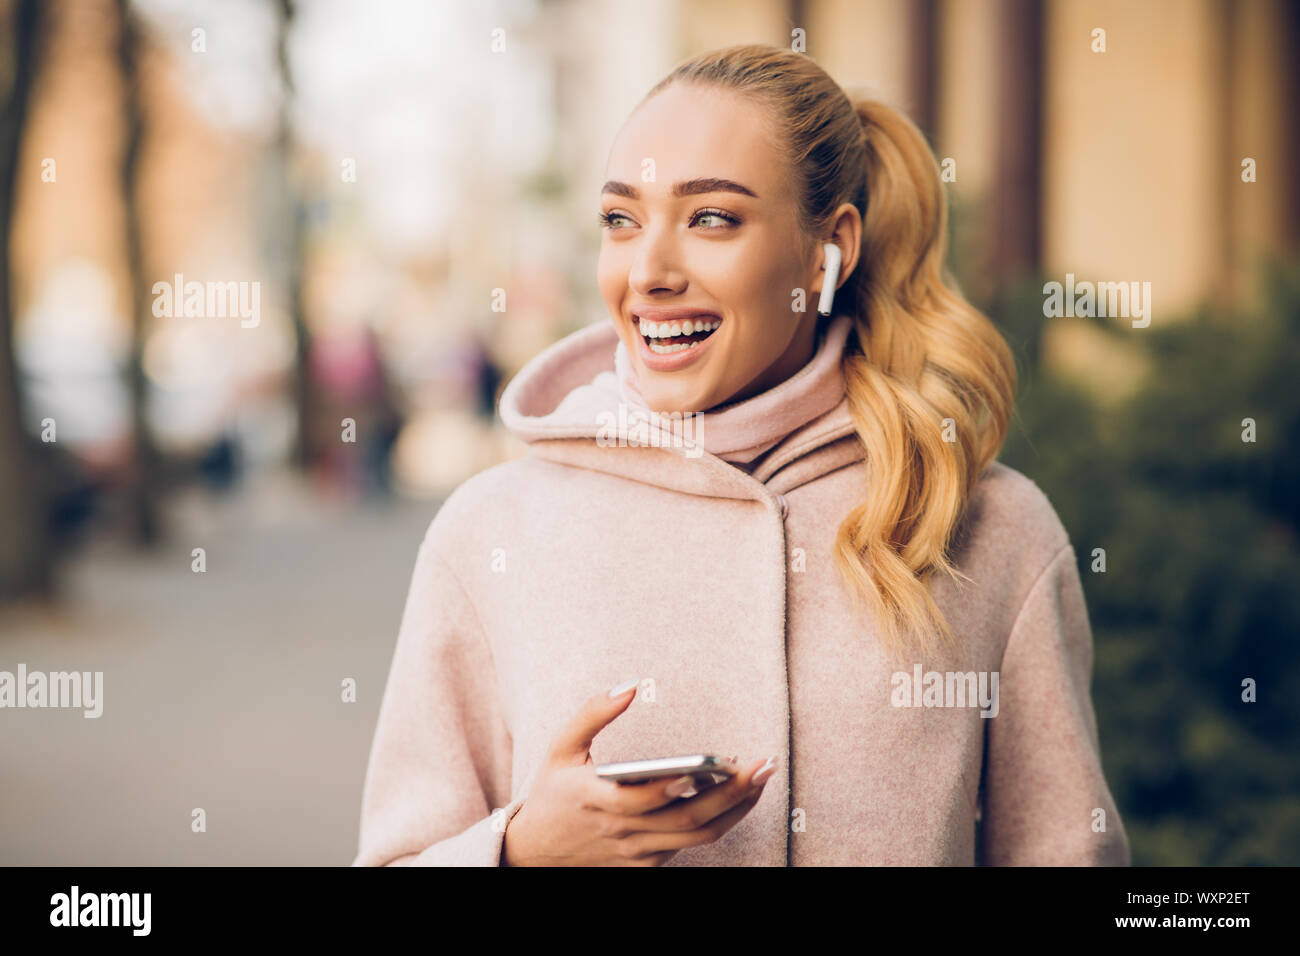 Airpods High Resolution Stock Photography And Images Alamy